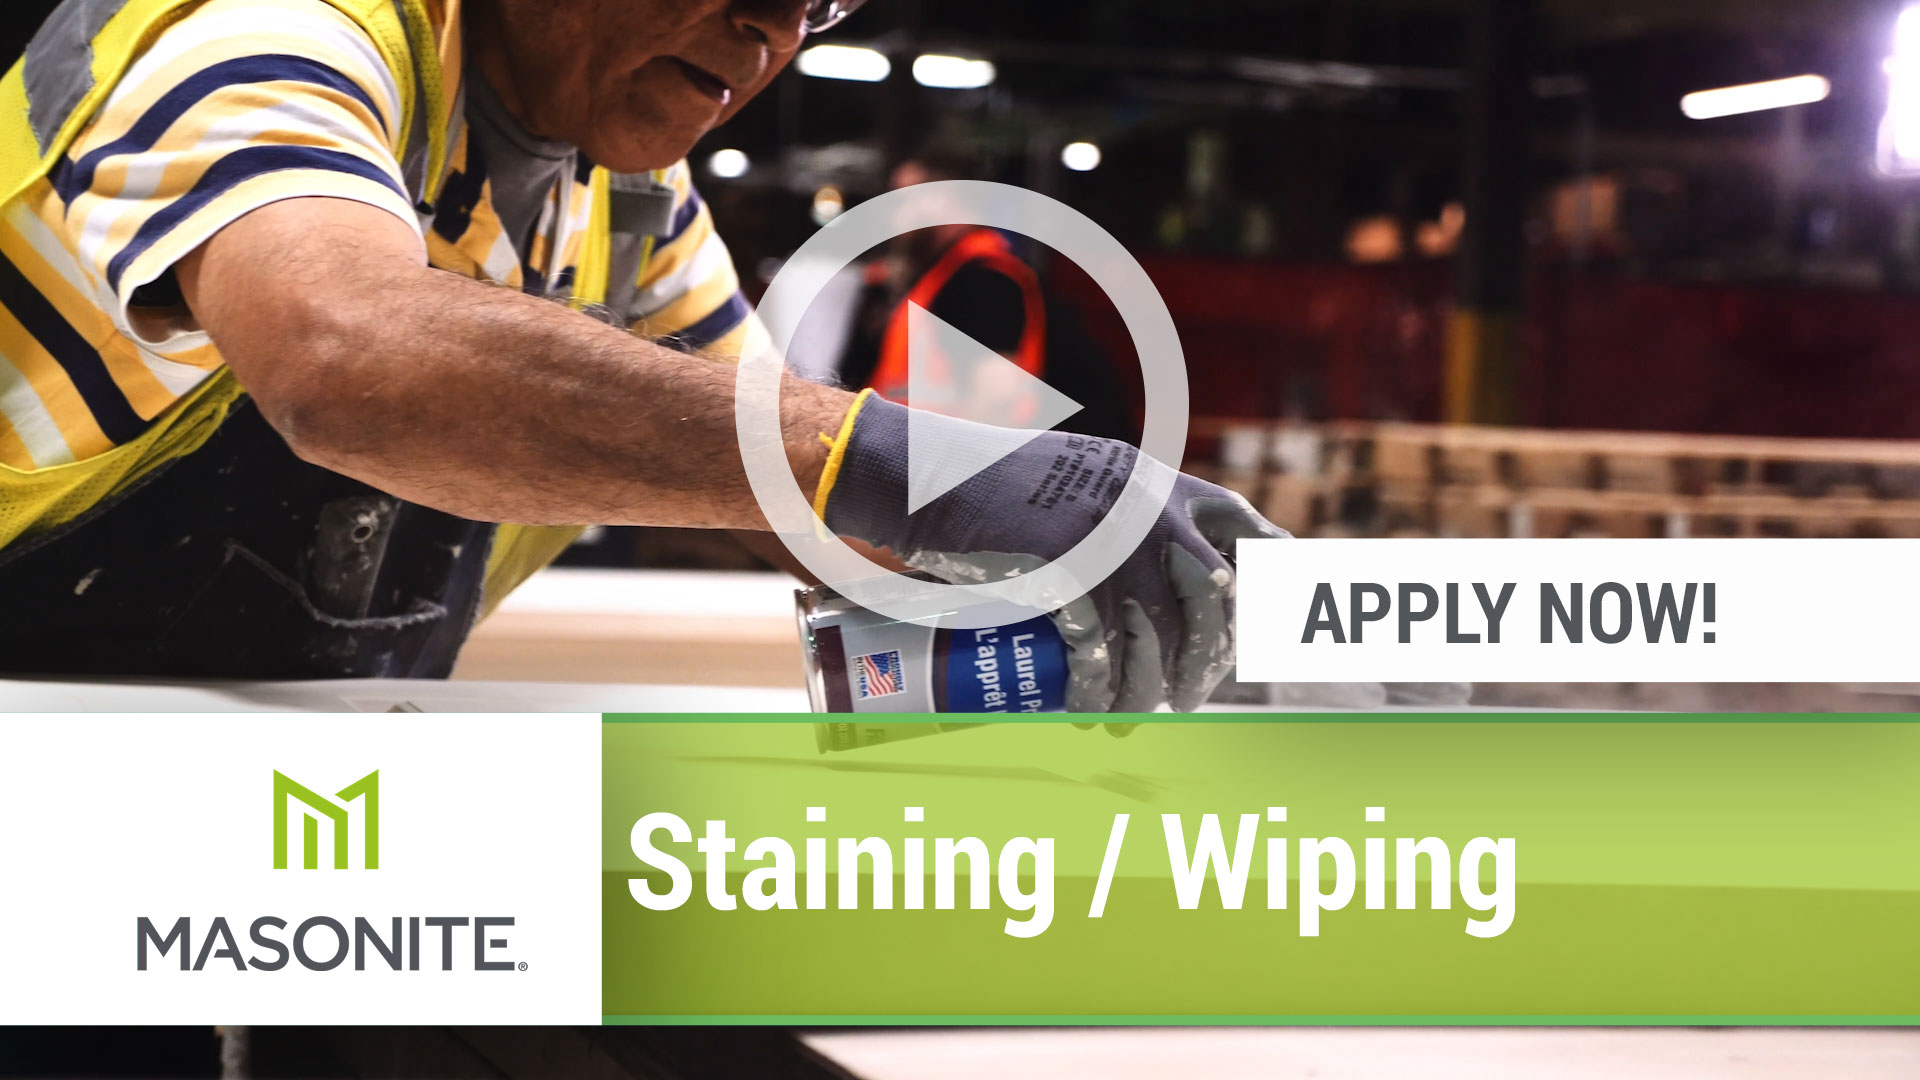 Watch our careers video for available job opening Staining _ Wiping Associate in Mesquite, TX, USA